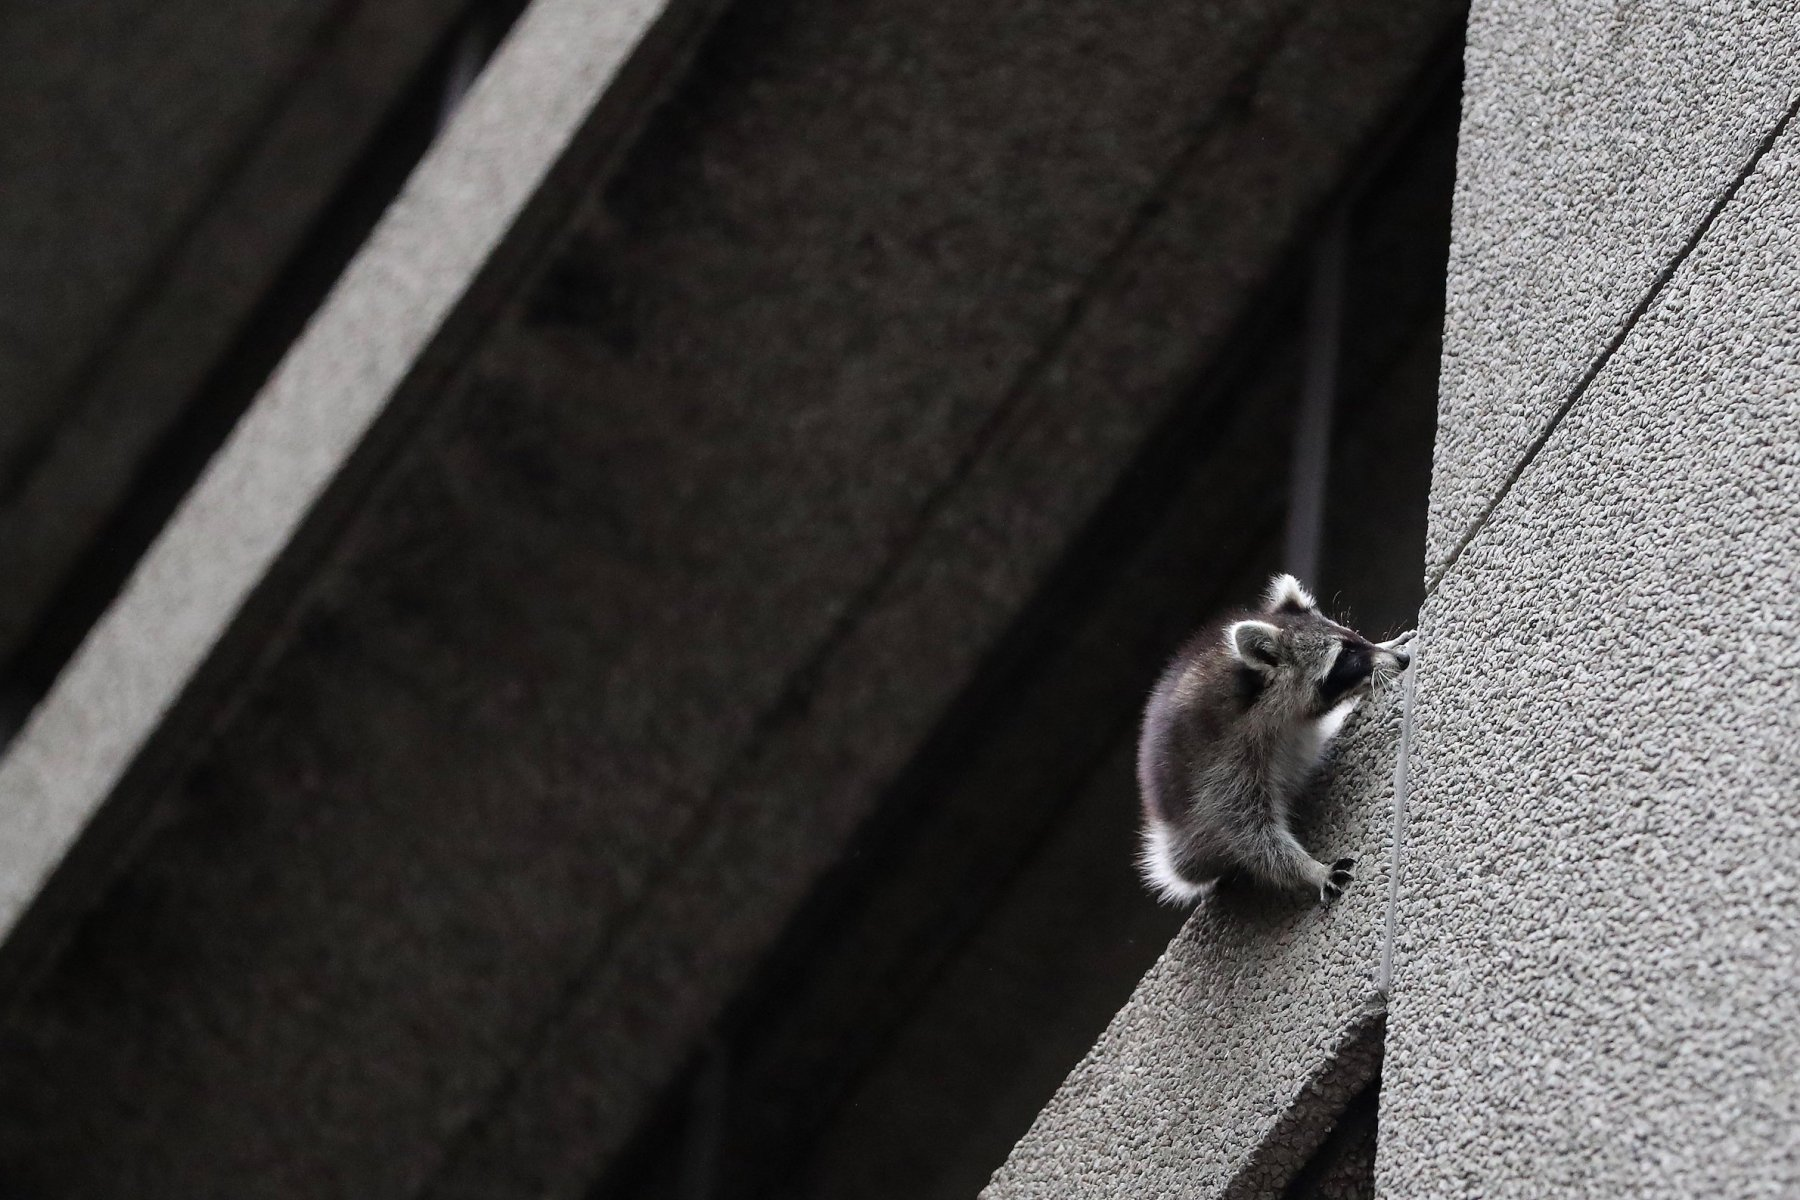 A raccoon is stranded on a fourth floor ledge on the Toronto Star building at One Yonge Street. The ledge is at a 45 degree angle. at  in Toronto. Toronto is engaged in a years-long, playful war against its raccoons. (Steve Russell/Toronto Star via Getty Images)